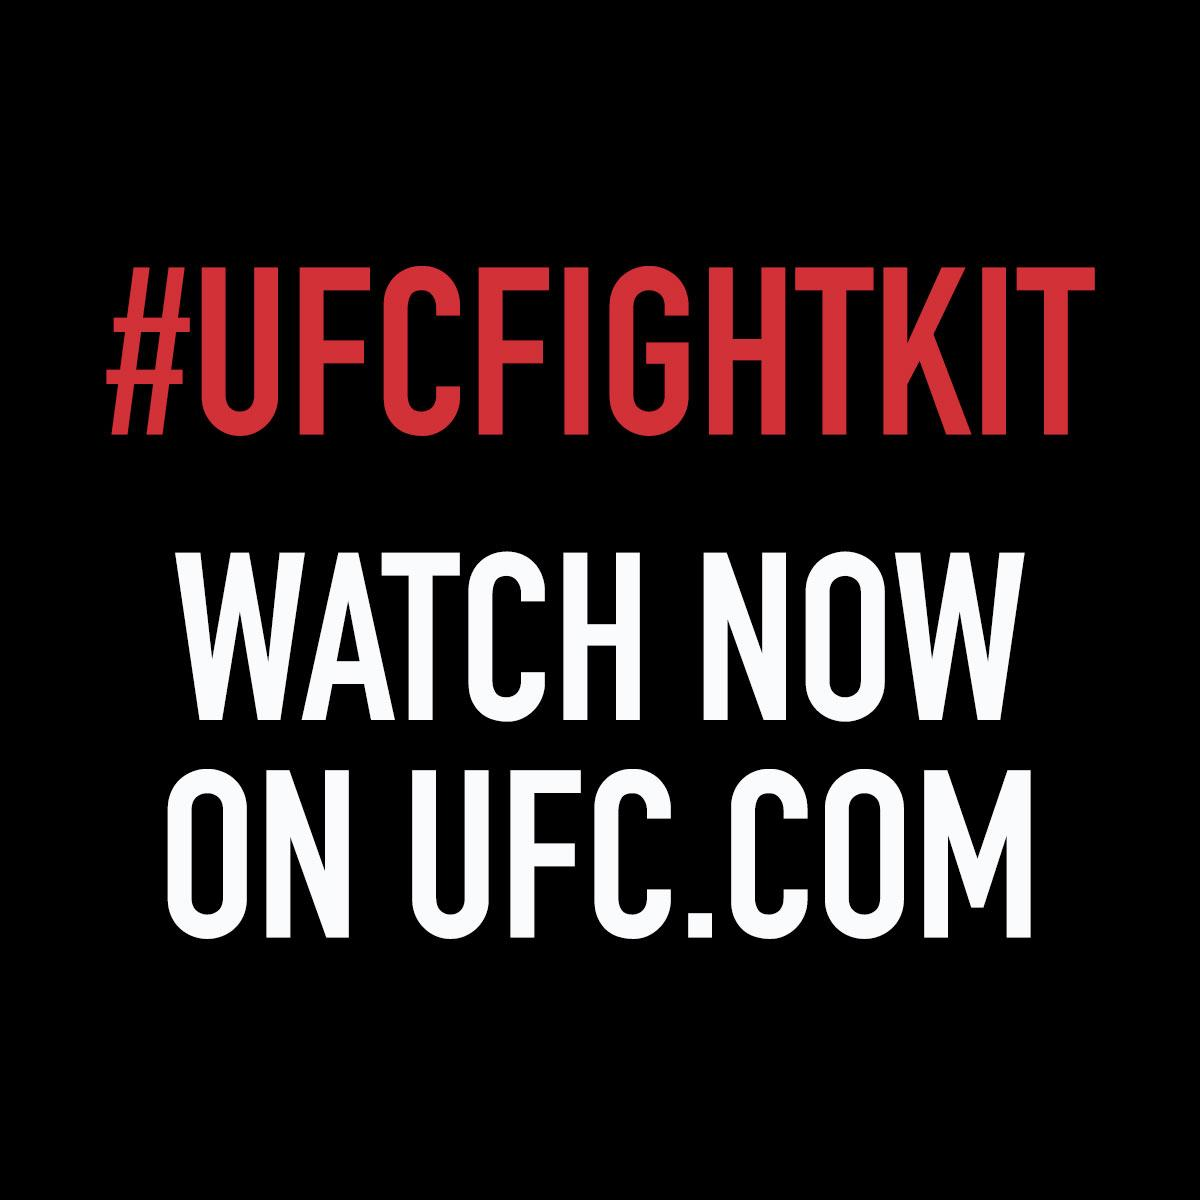 RT @ufc: The #UFCFightKit unveil is LIVE NOW! Watch here: http://t.co/XyXjEVtbfa http://t.co/E2oPyG1a4i